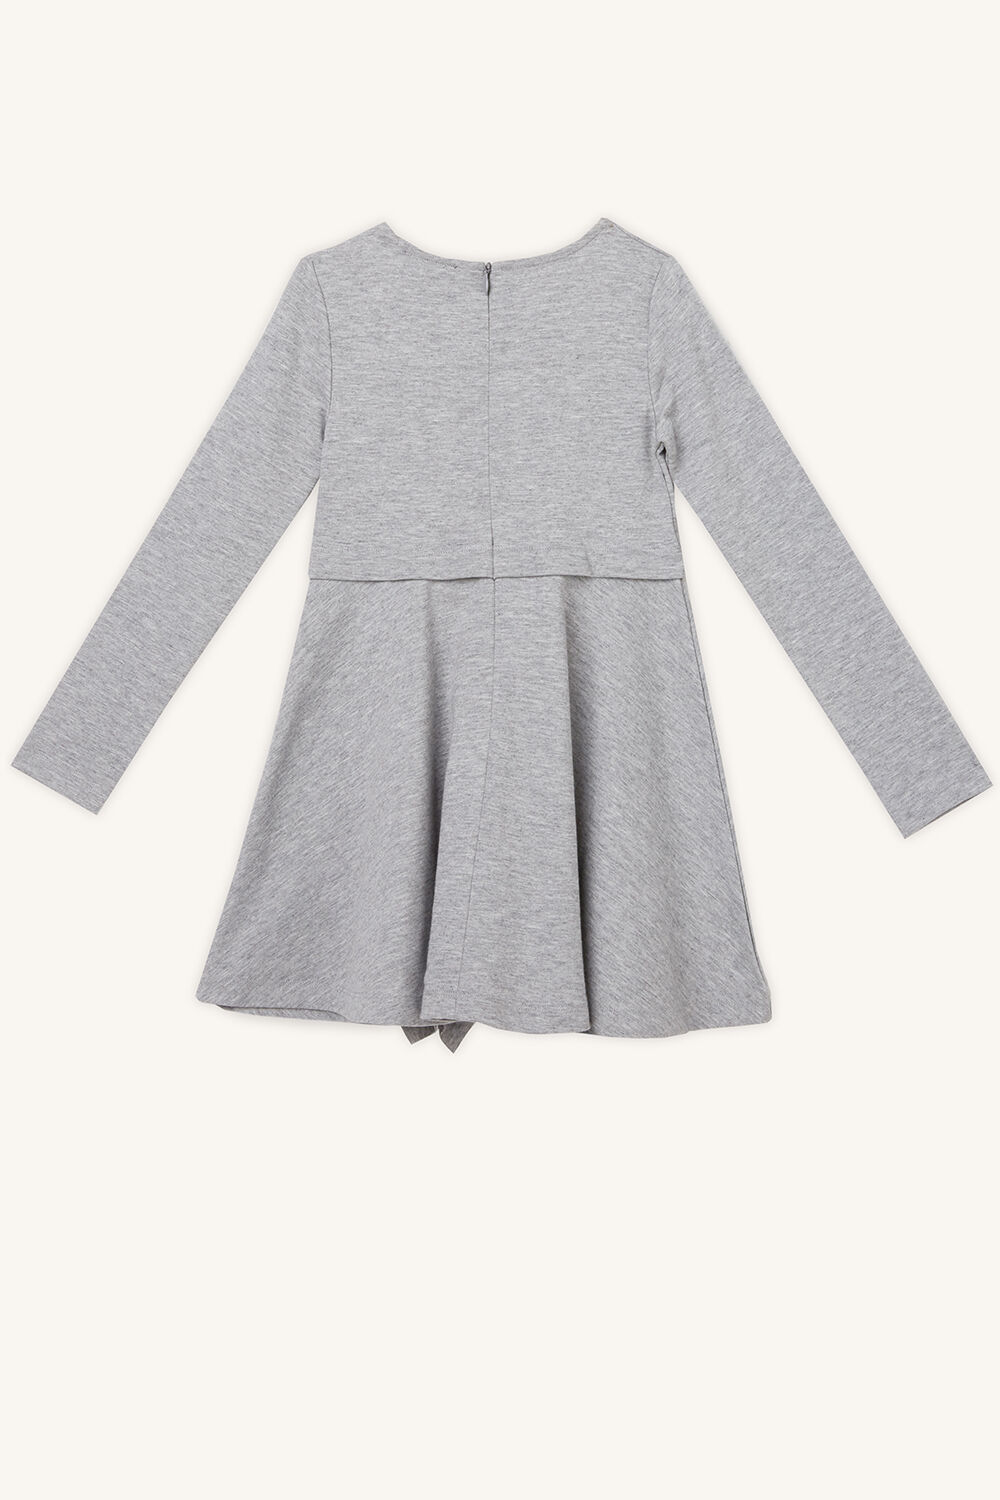 DASHA RUFFLE DRESS in colour MOONBEAM